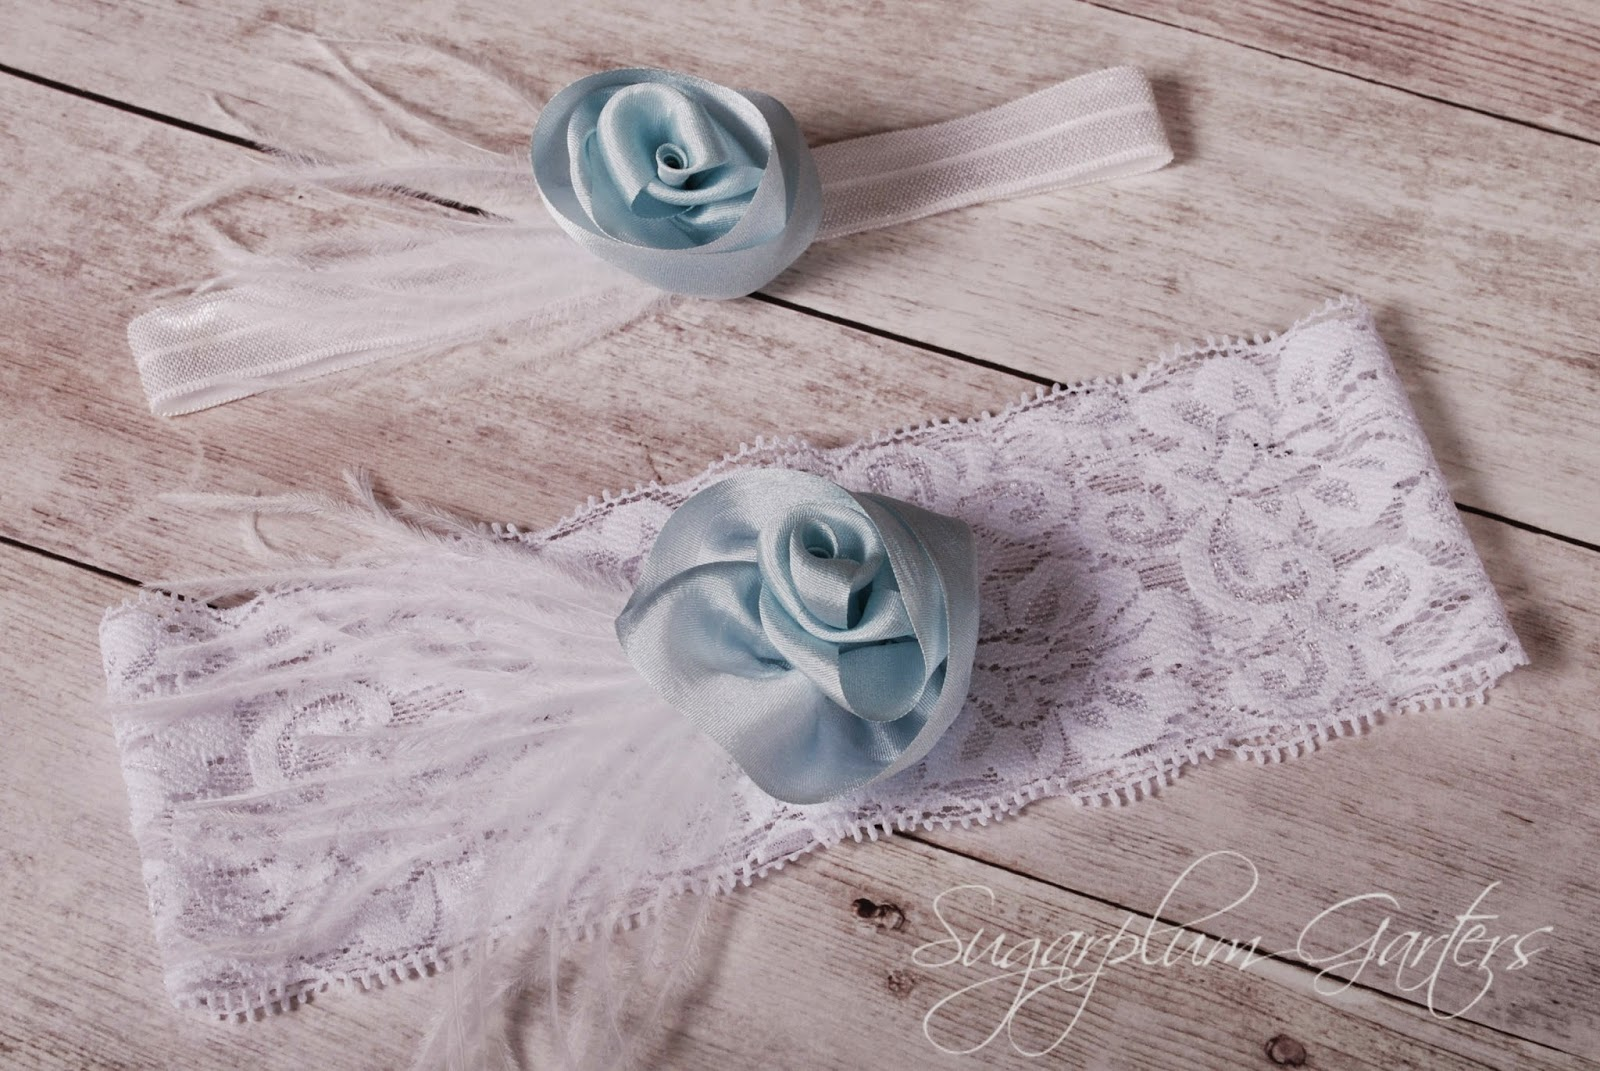 Wedding Garter Set in Pale Blue Silk and White Lace by Sugarplum Garters